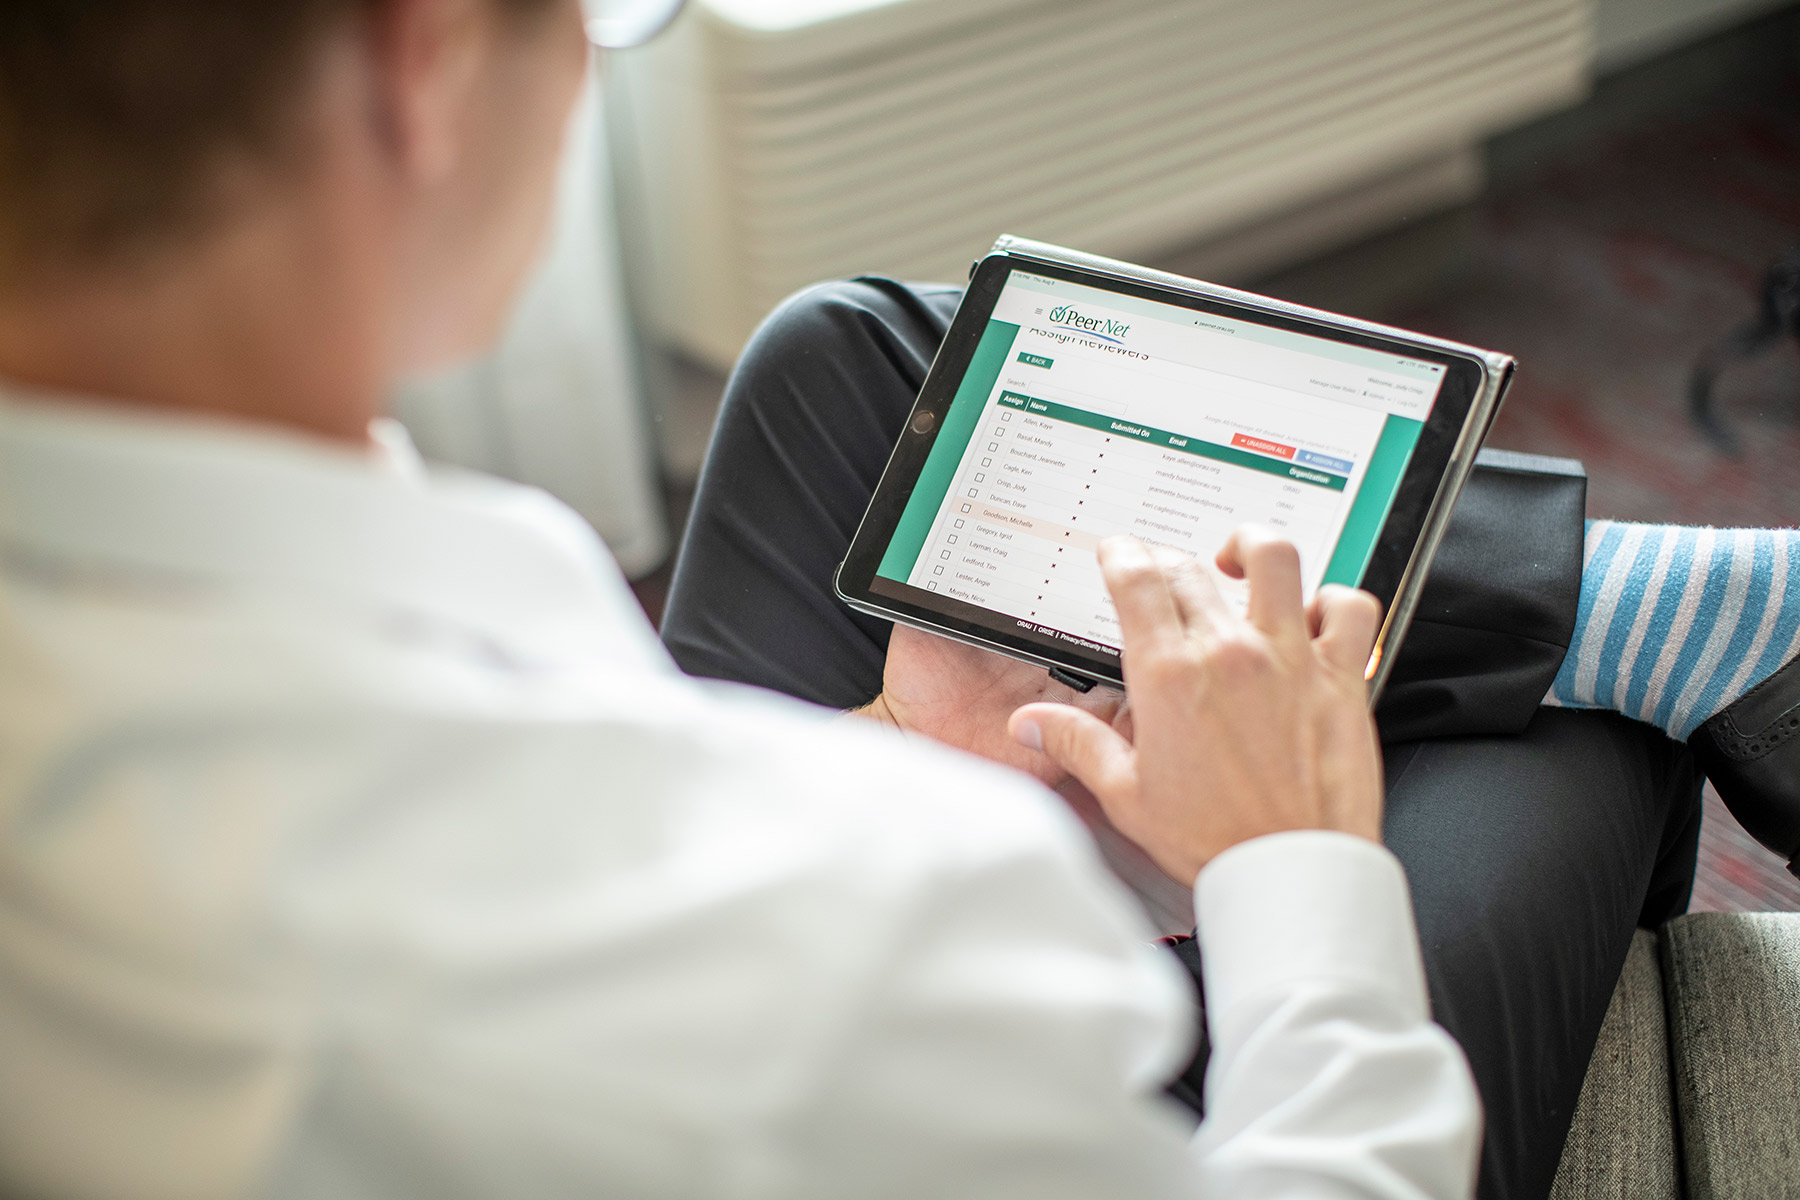 Peer reviewer accessing Peernet with a mobile device